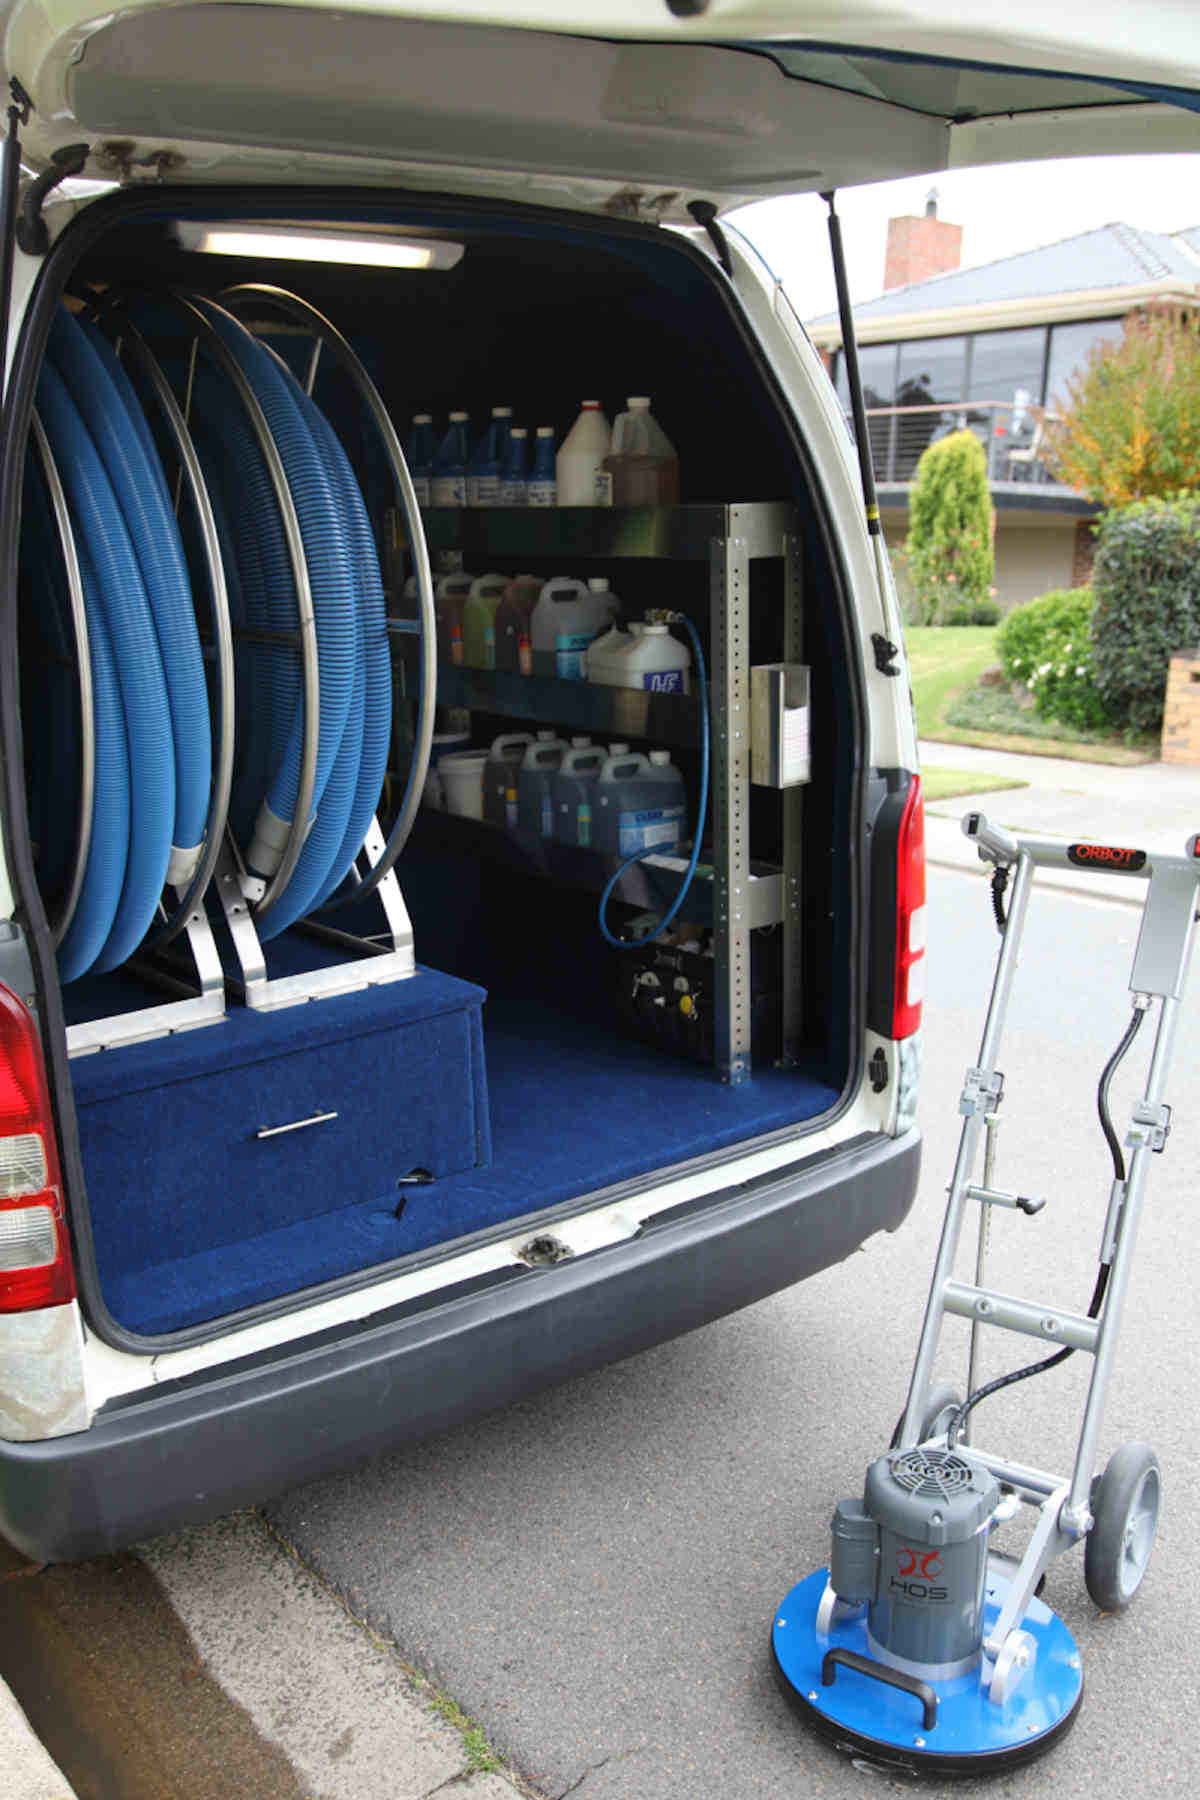 About local carpet cleaning company Grime Fighters Cleaning - Van with latest equipment and cleaning solutions